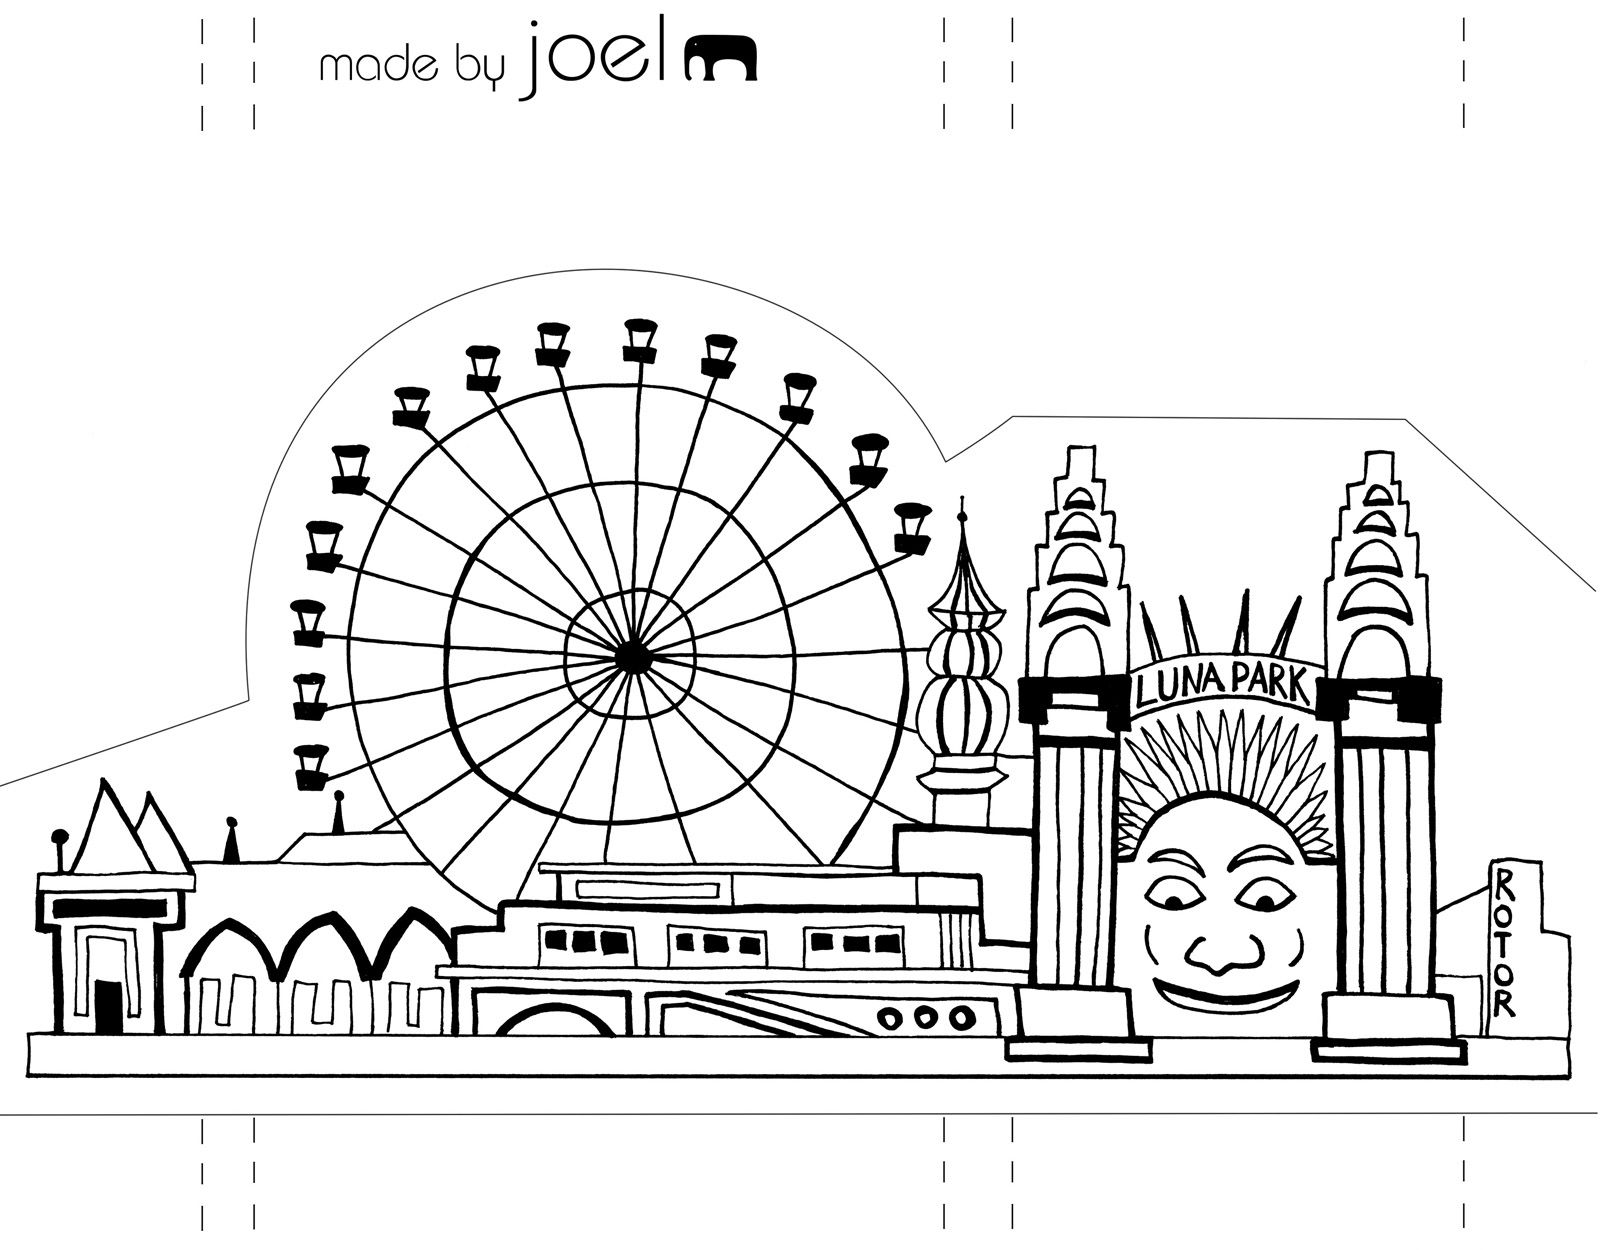 Template Made by Joel Paper City Sydney Luna Park, Paper